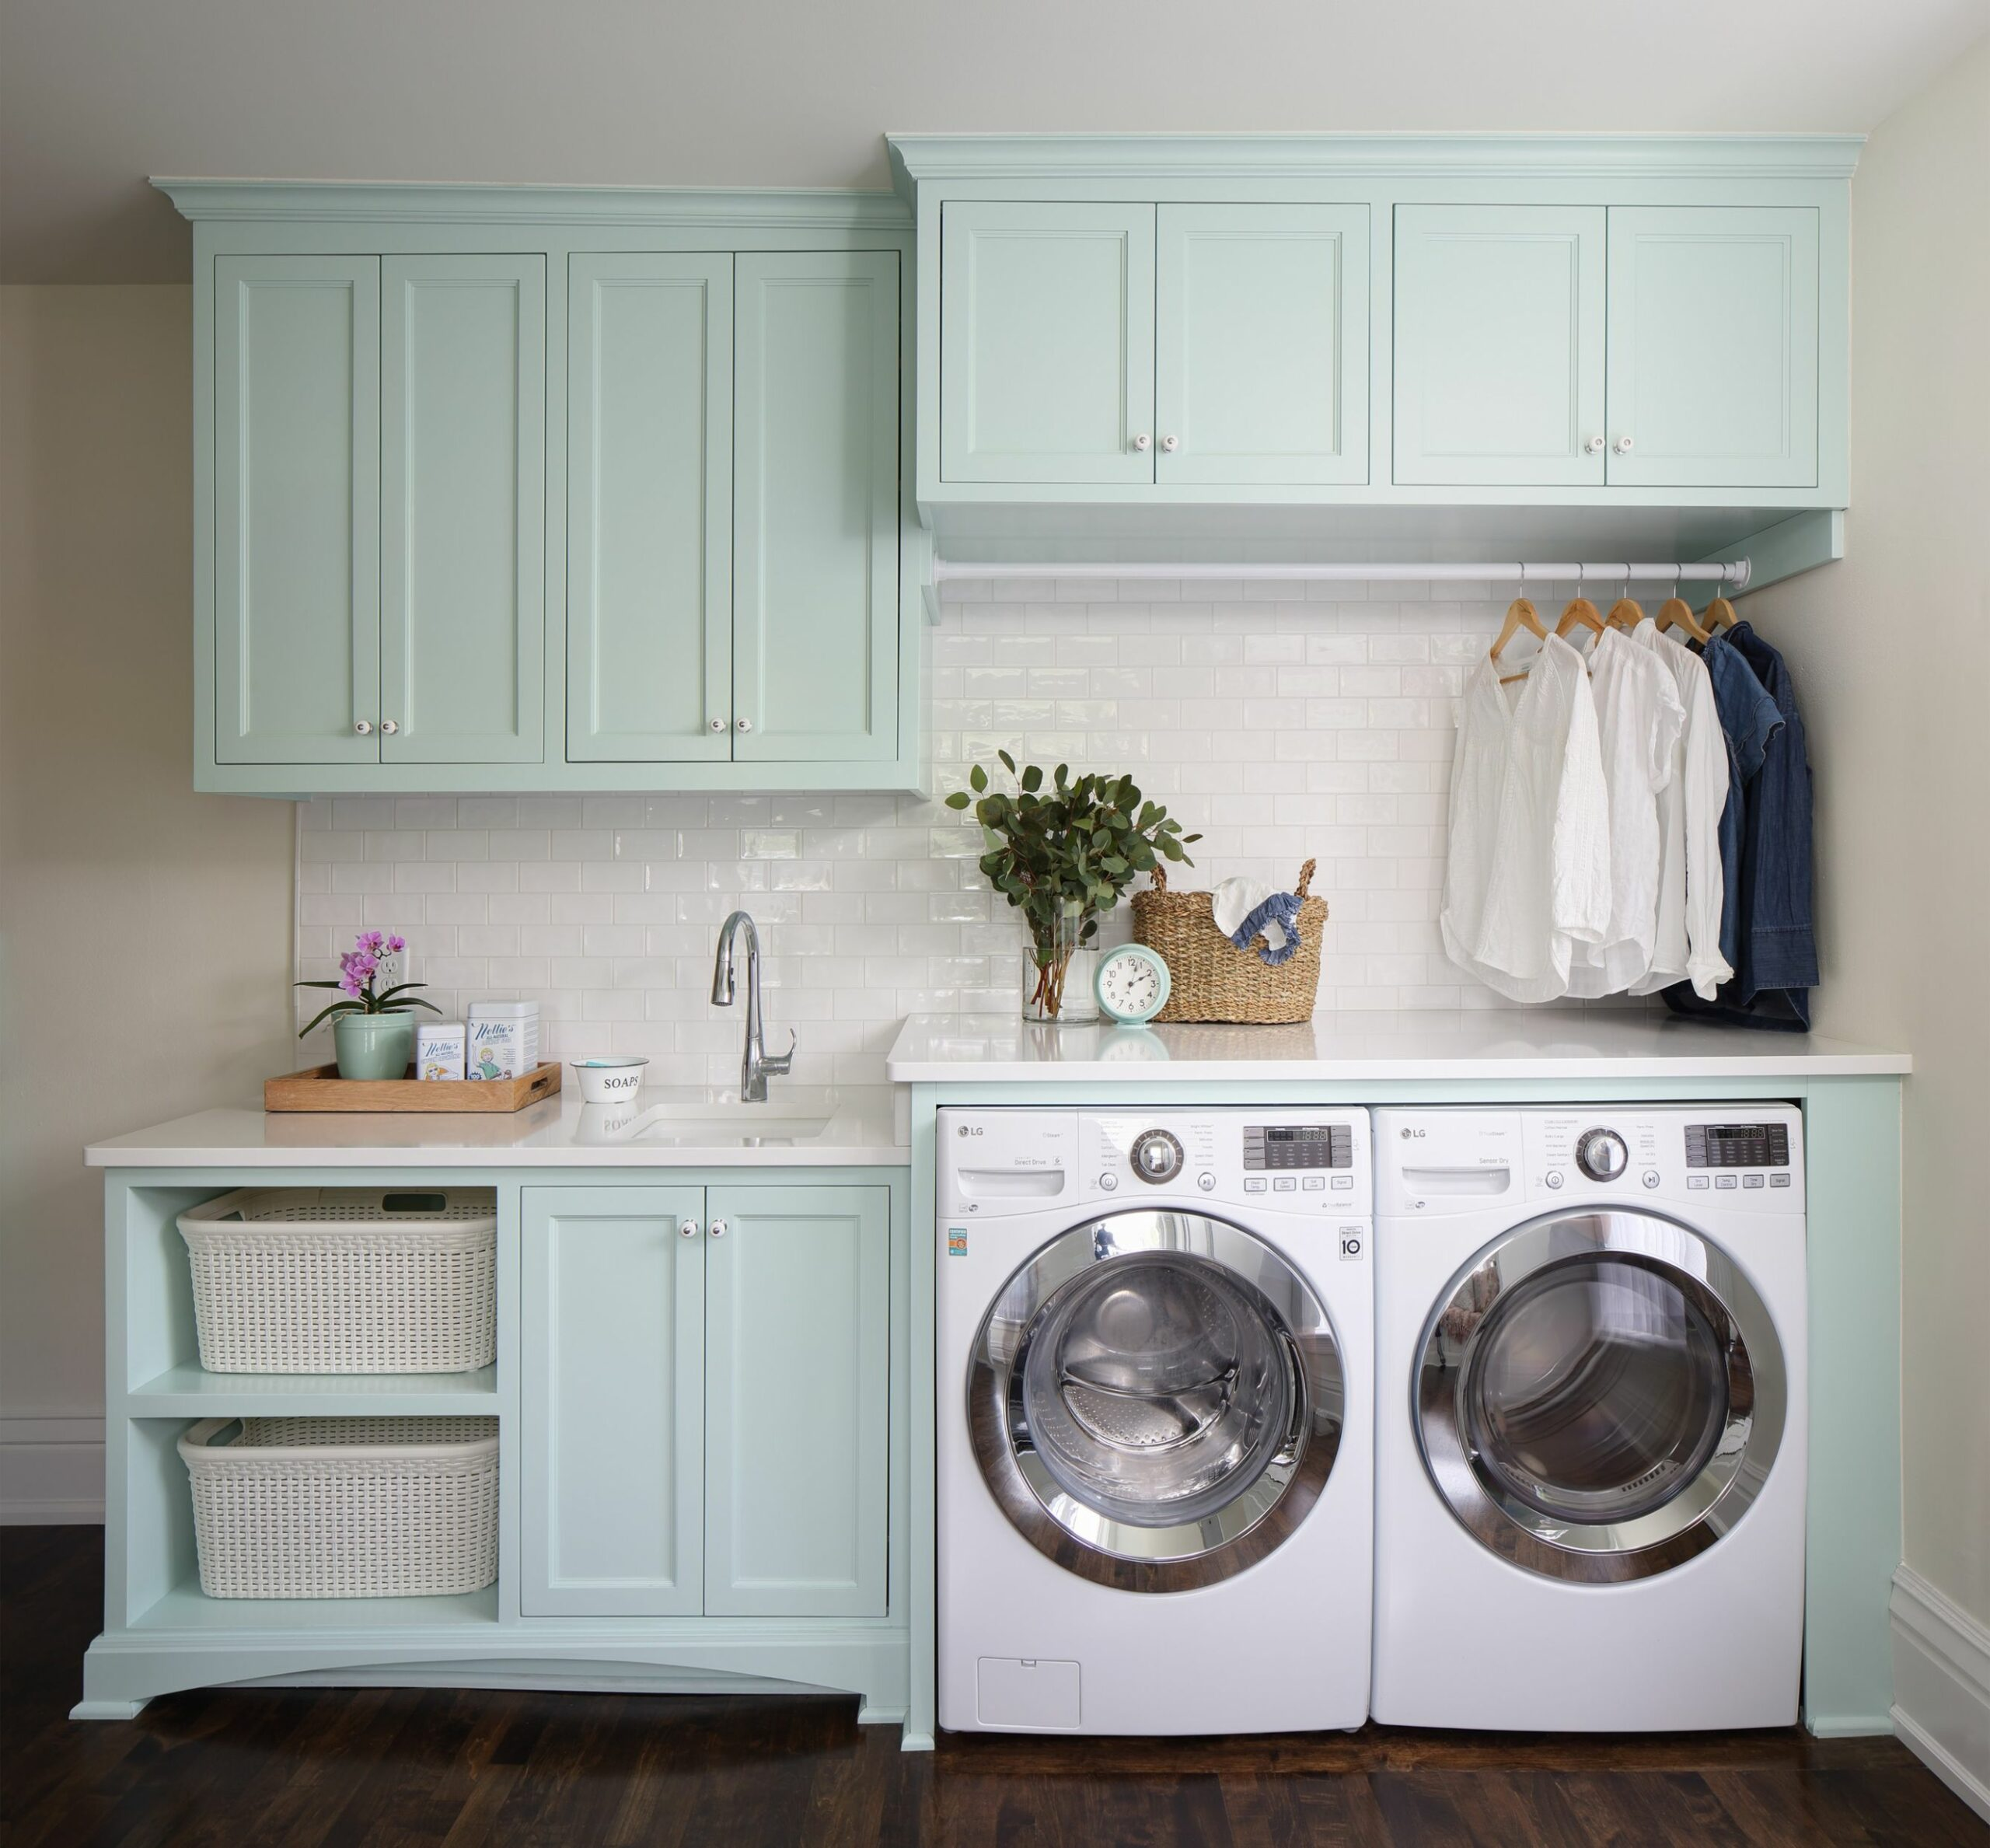 9 Beautiful Laundry Room Pictures & Ideas | Houzz - laundry room trim ideas